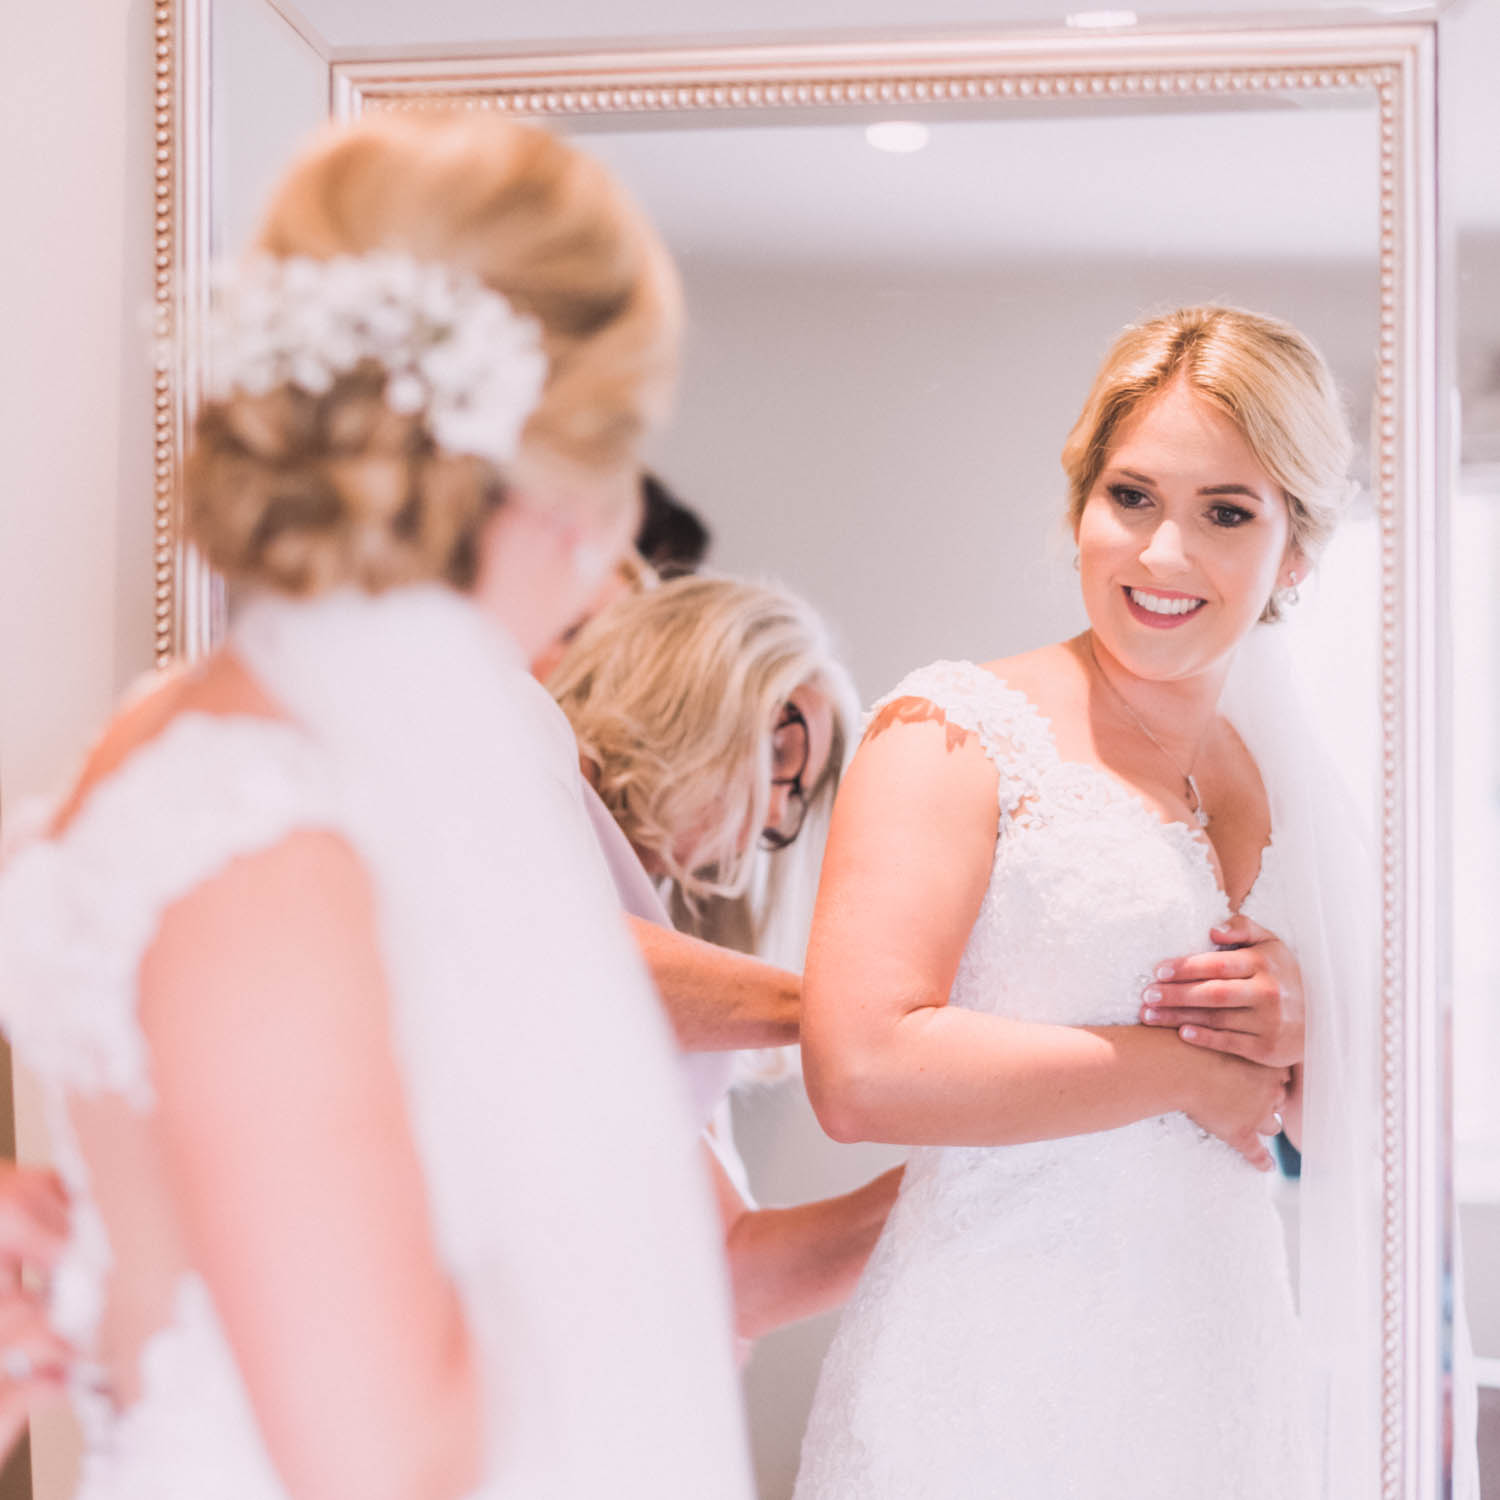 Bride looks at self in mirror and smiles whilst mother fastens her wedding dress